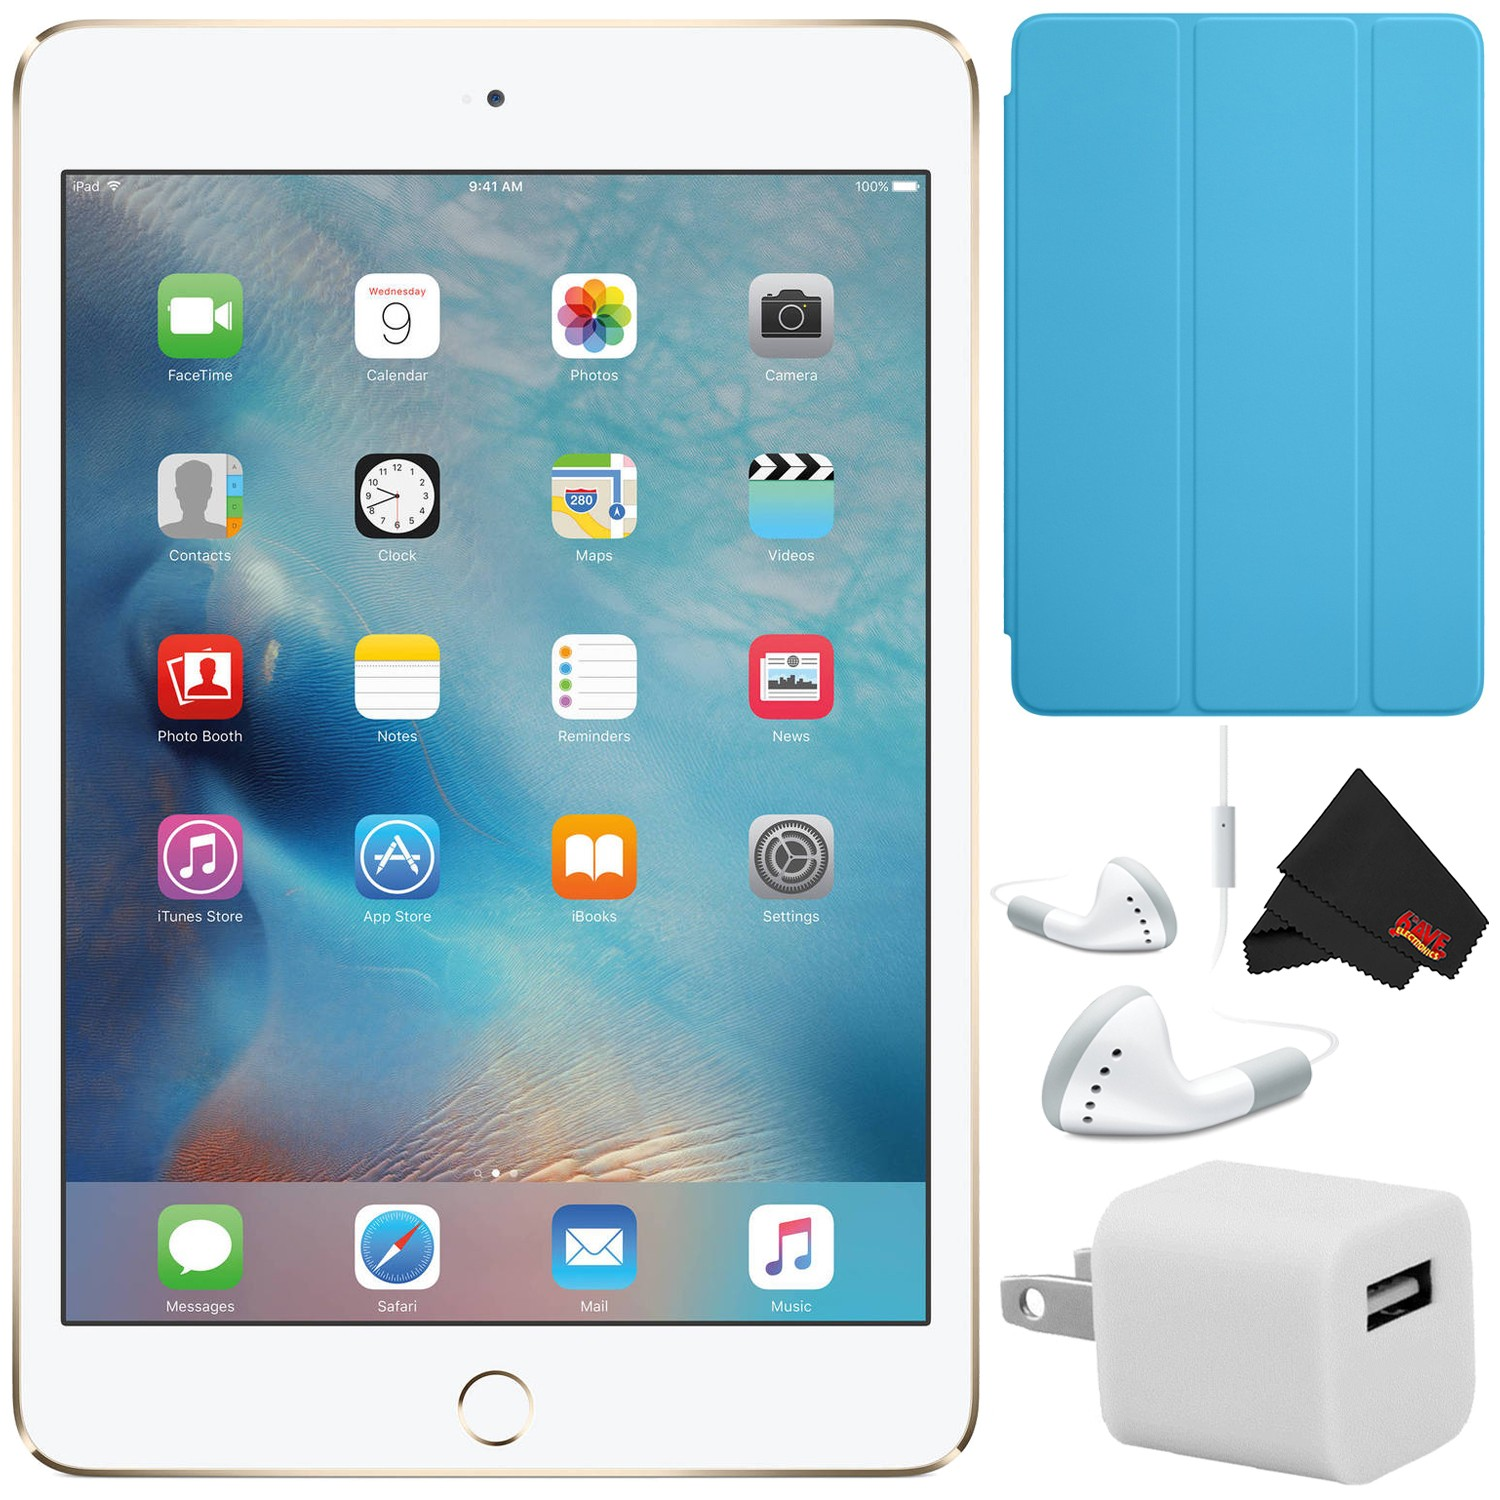 "Apple iPad mini 4 128GB 7.9"" Retina Display (Wi-Fi Only, Gold) MK9Q2LL/A - Bundle w/ White Corded Ear Buds"